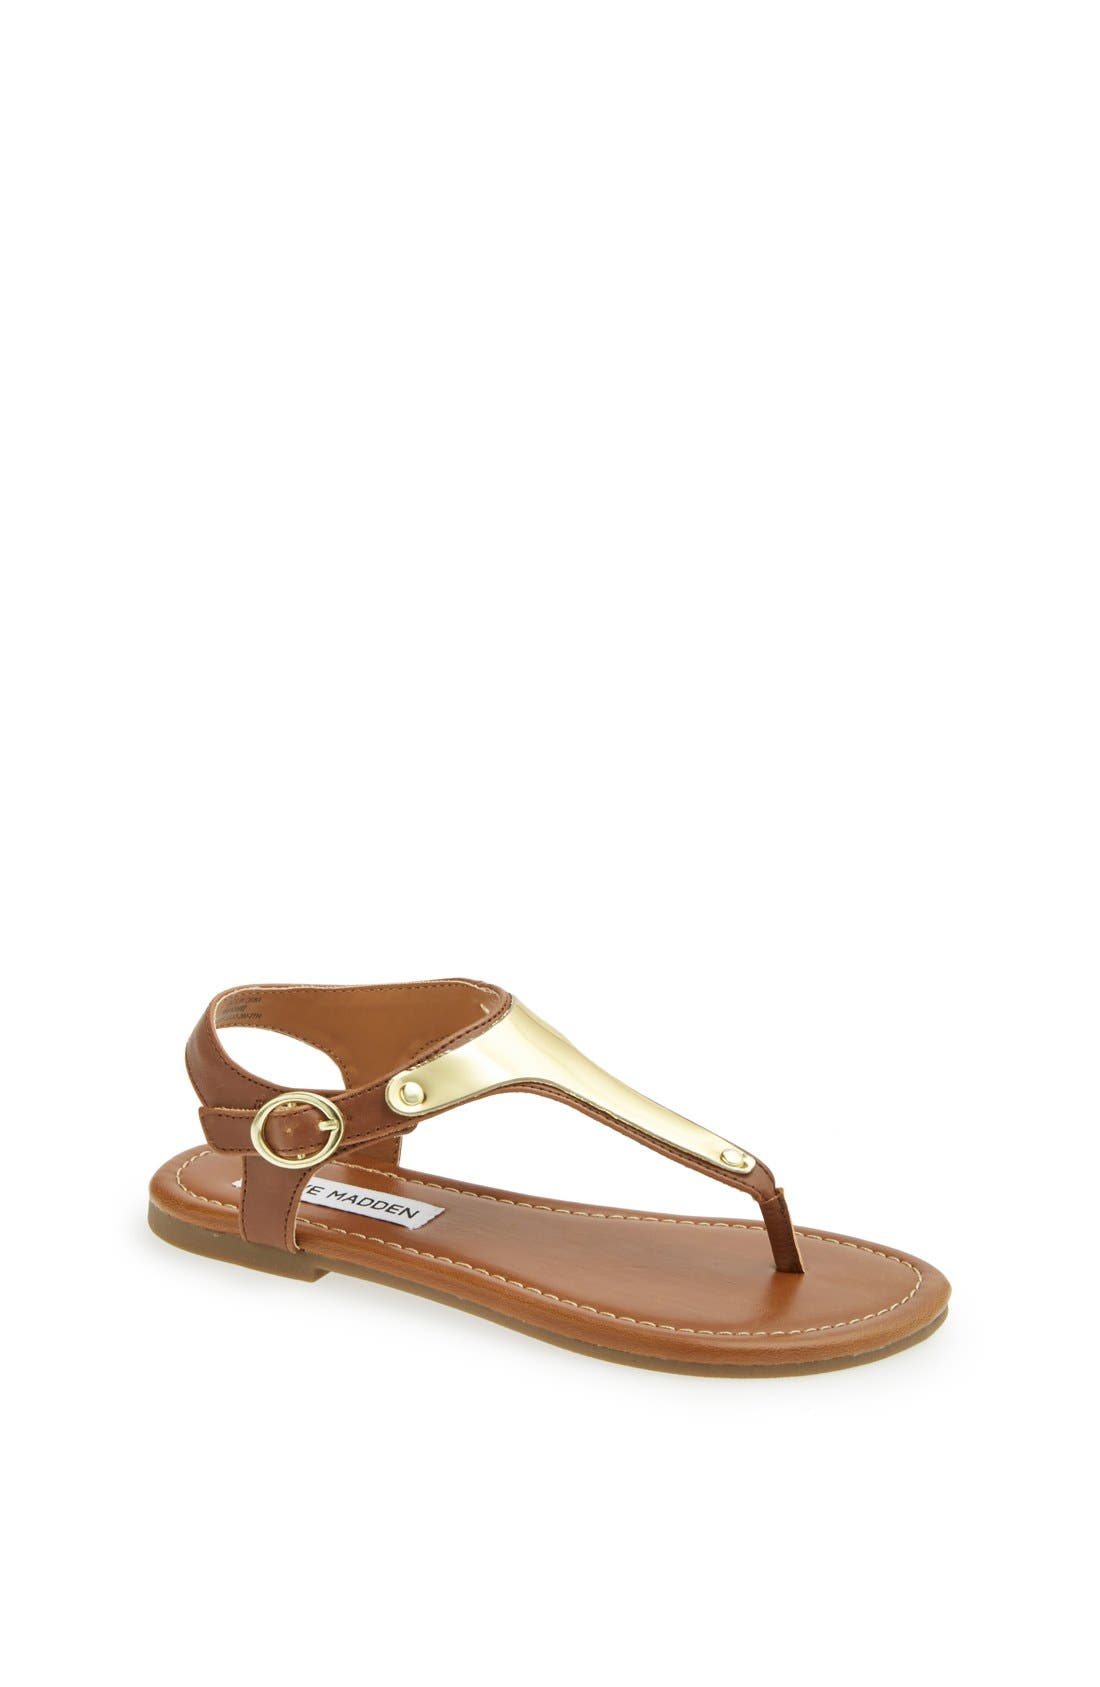 Main Image - Steve Madden 'Pseudo' Sandal (Little Kid & Big Kid)